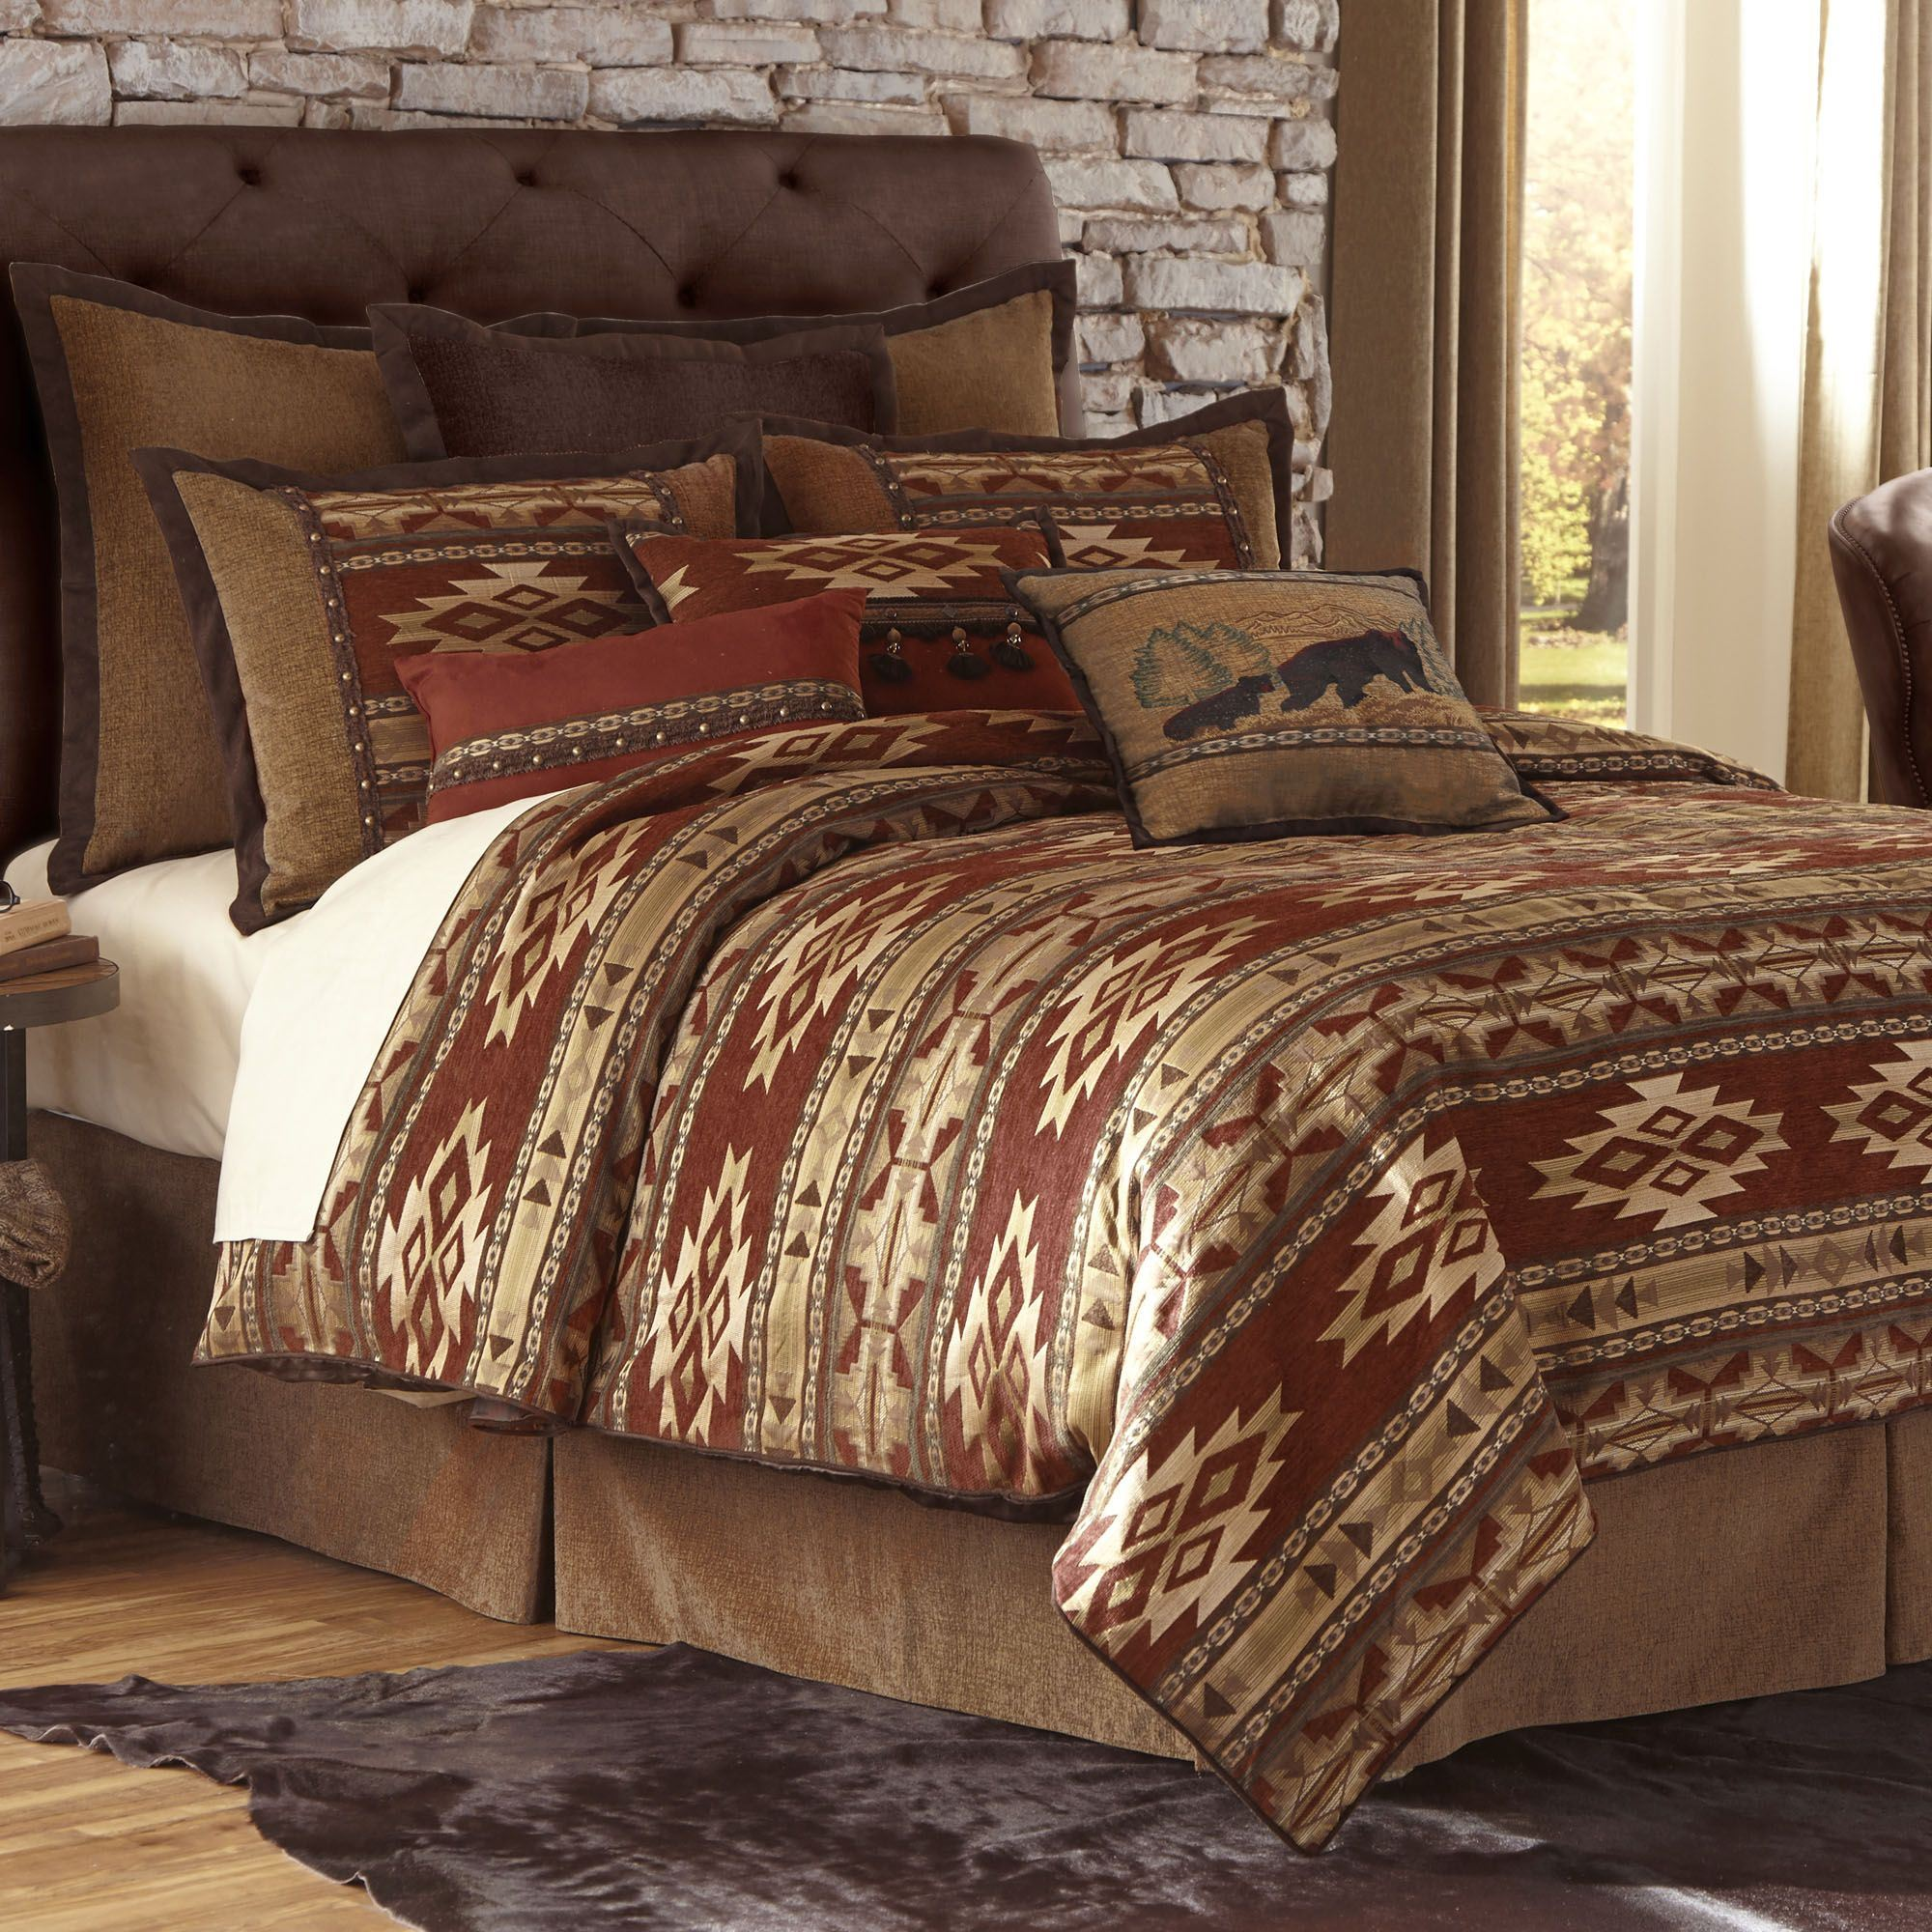 Sonorah southwest comforter bedding - Bedroom sheets and comforter sets ...